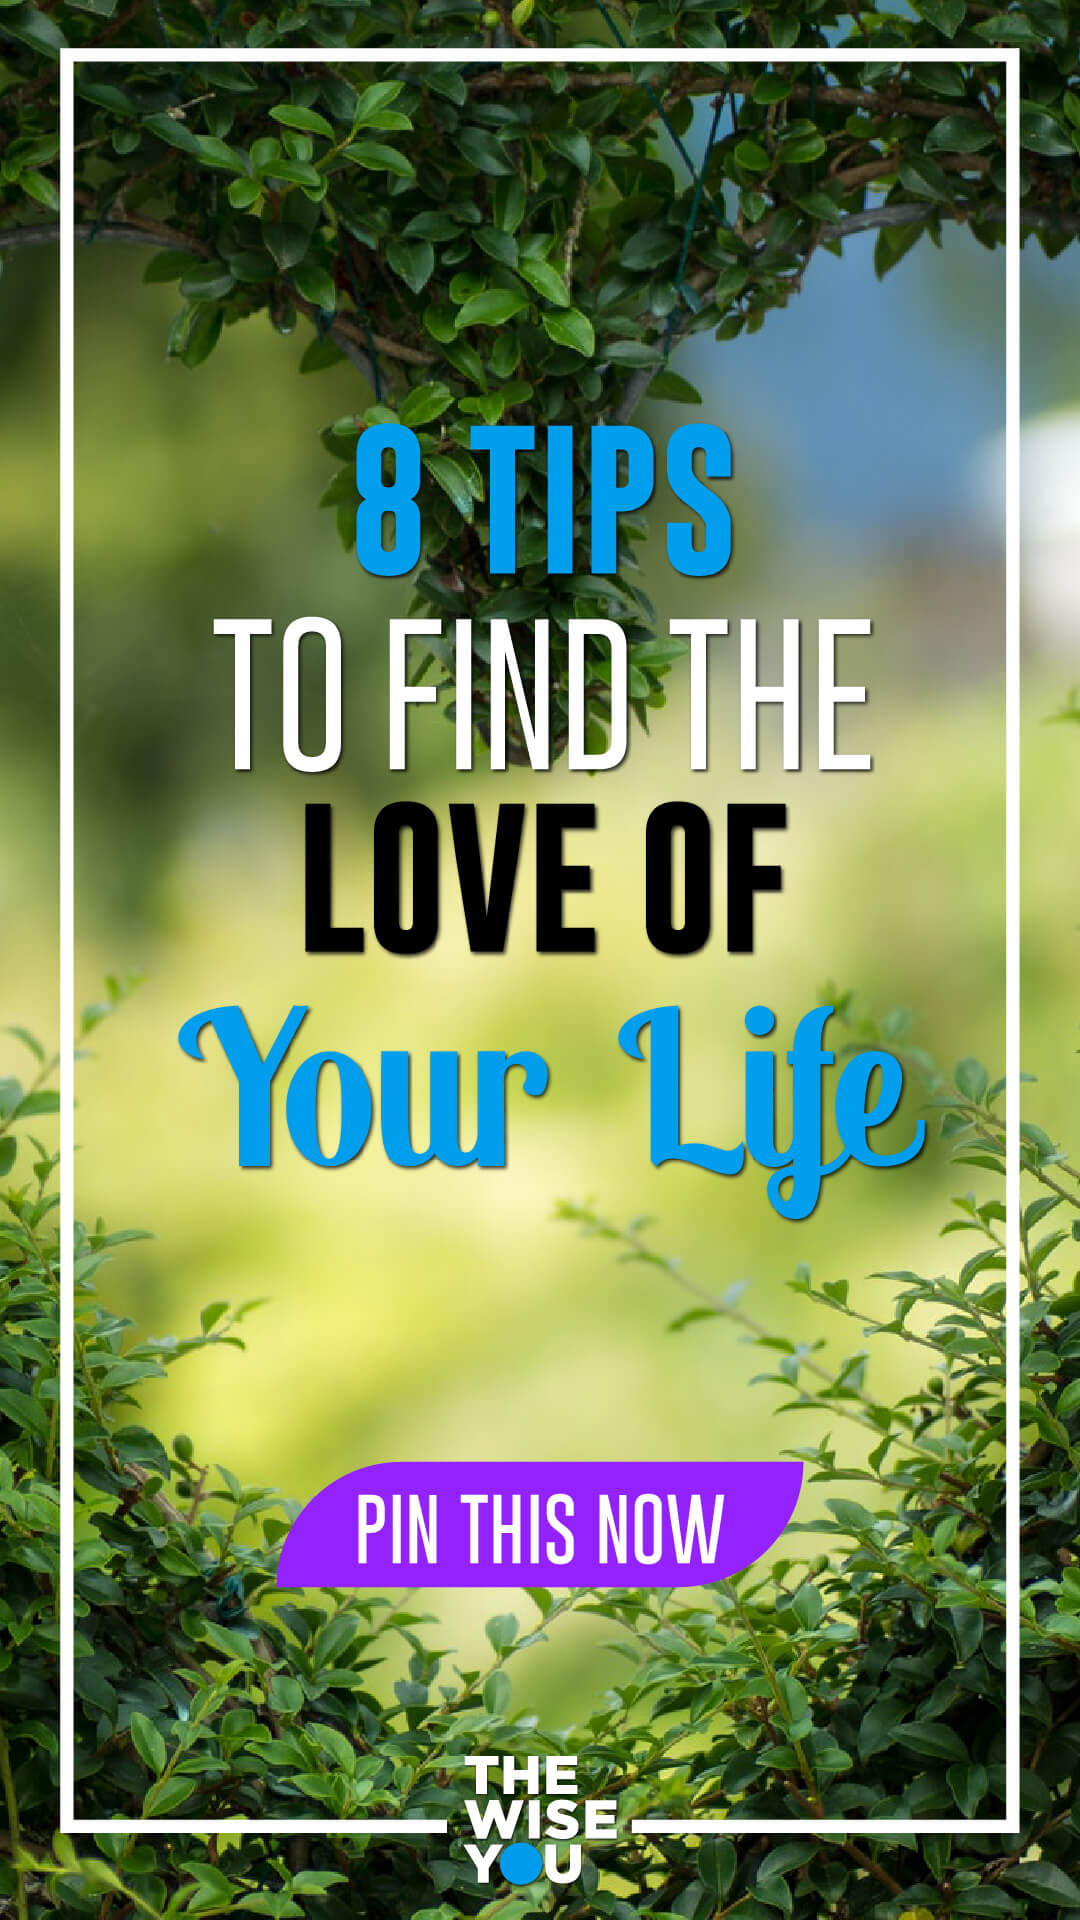 8 Tips to Find the Love of Your Life